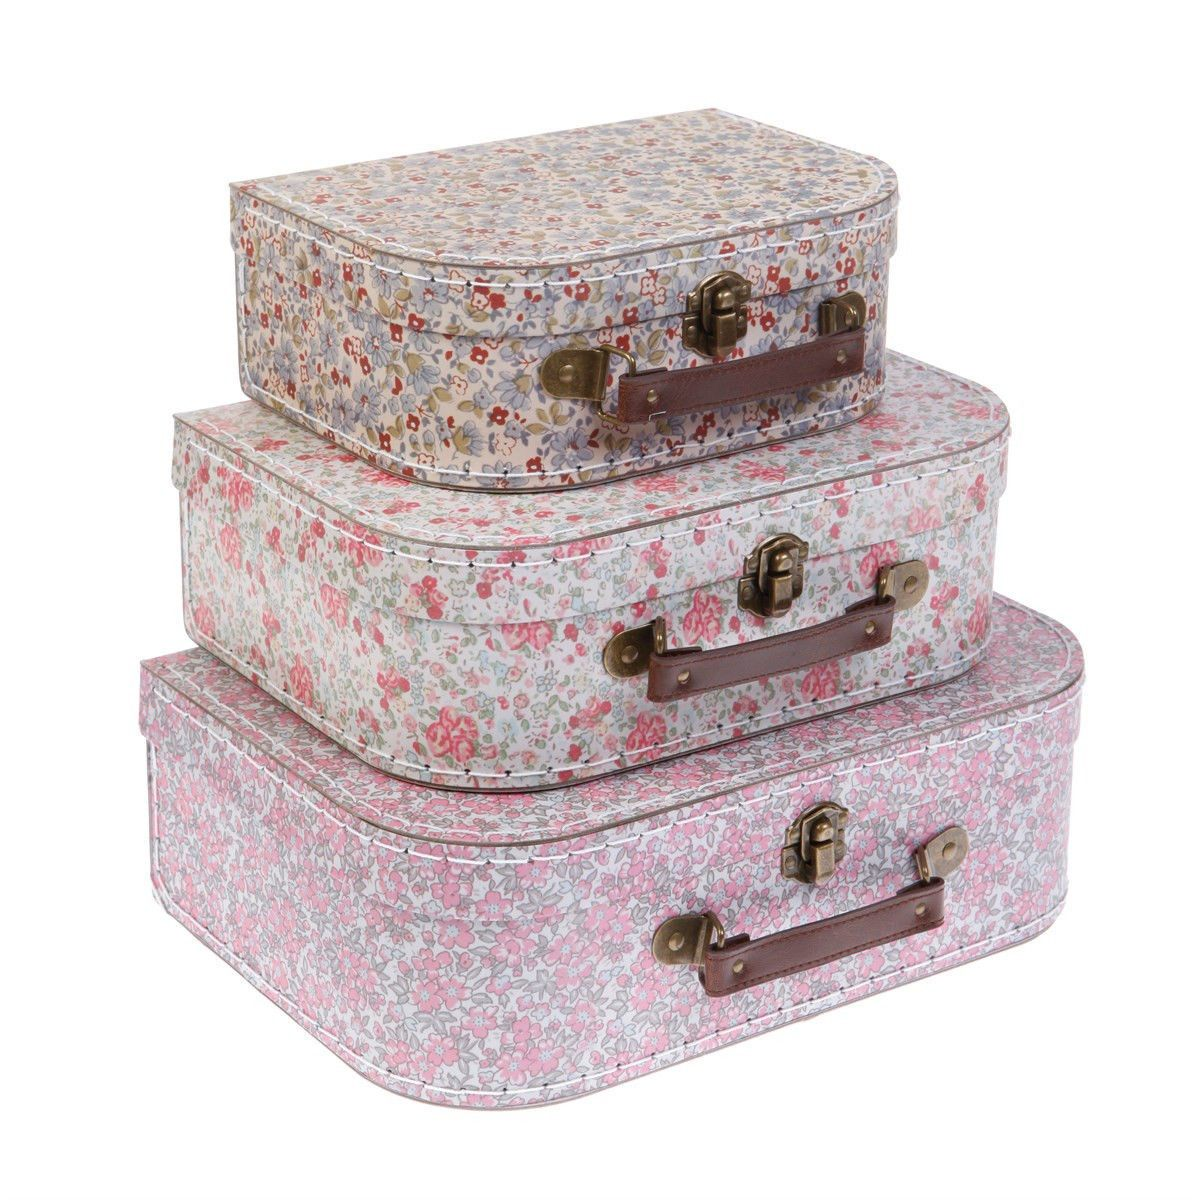 Vintage Decorative Suitcases Set Of 3 Decorative Vintage Ditsy Floral Suitcases Storage